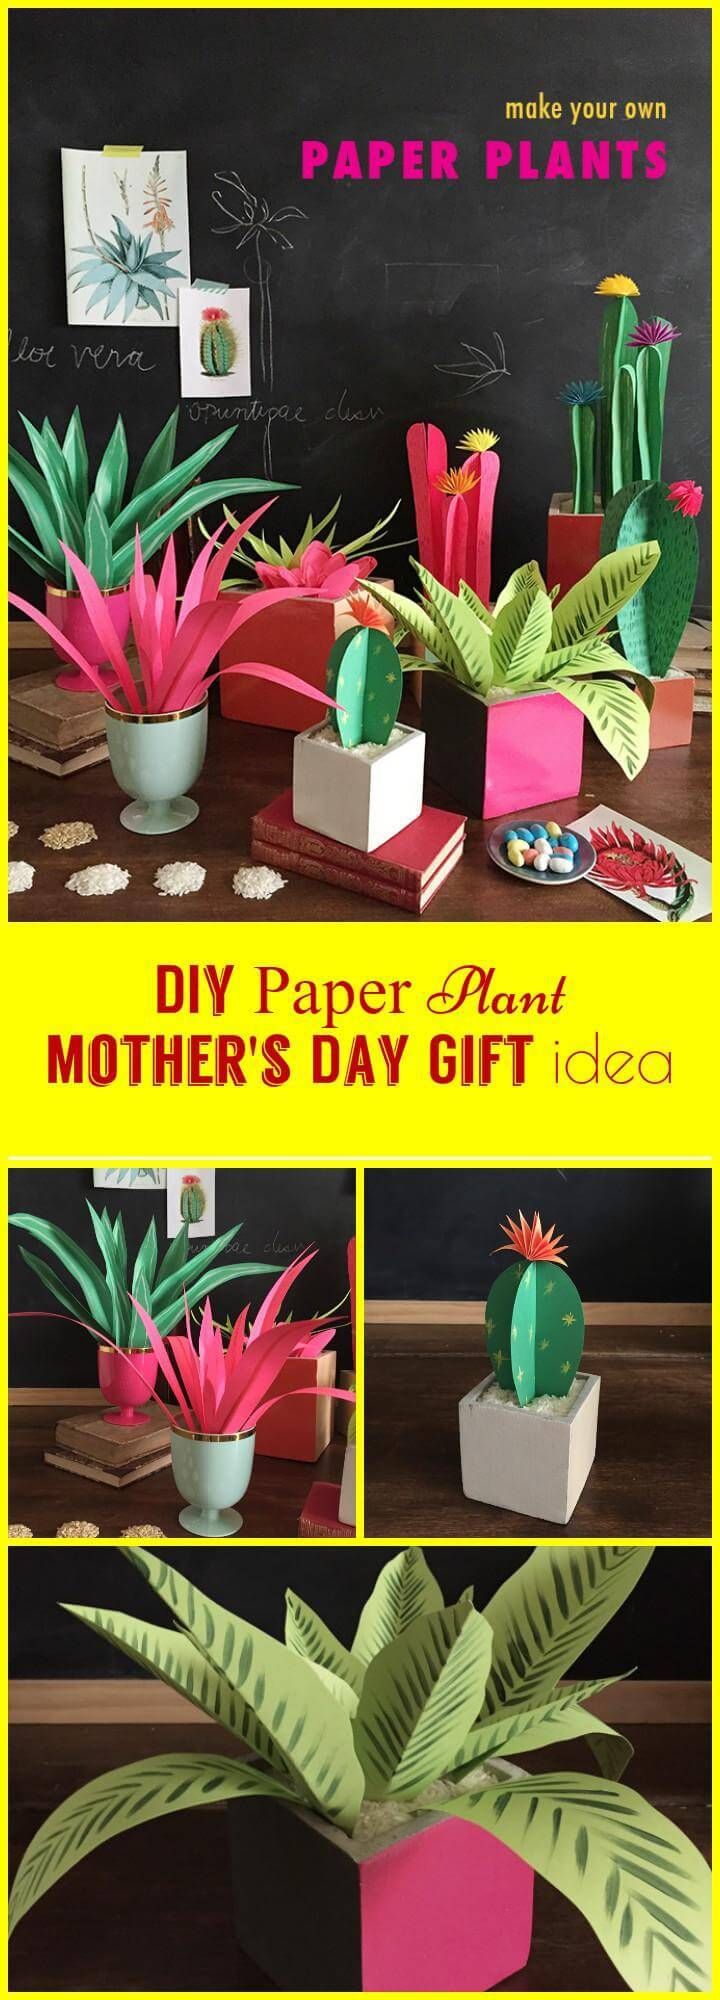 easy paper plant Mother's Day gift idea